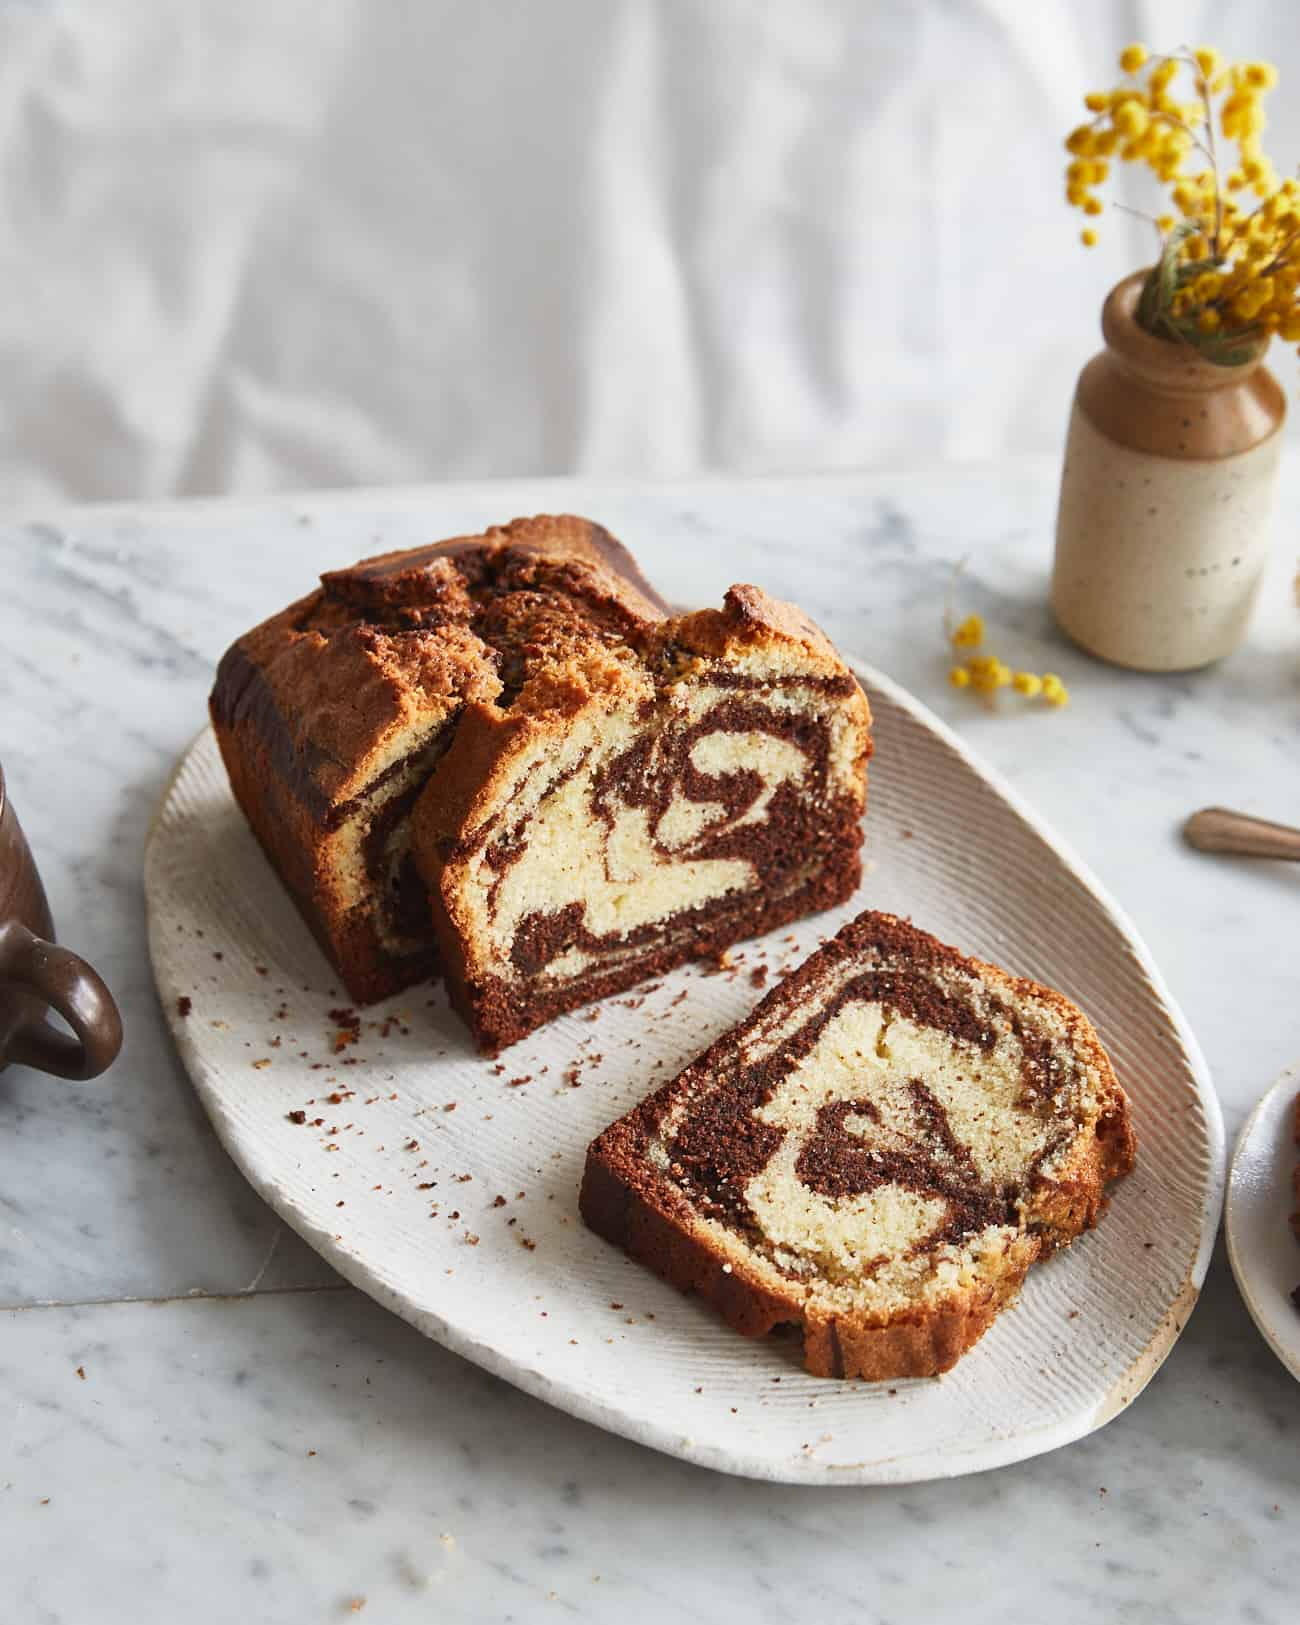 sliced marble cake on a plate with a vase